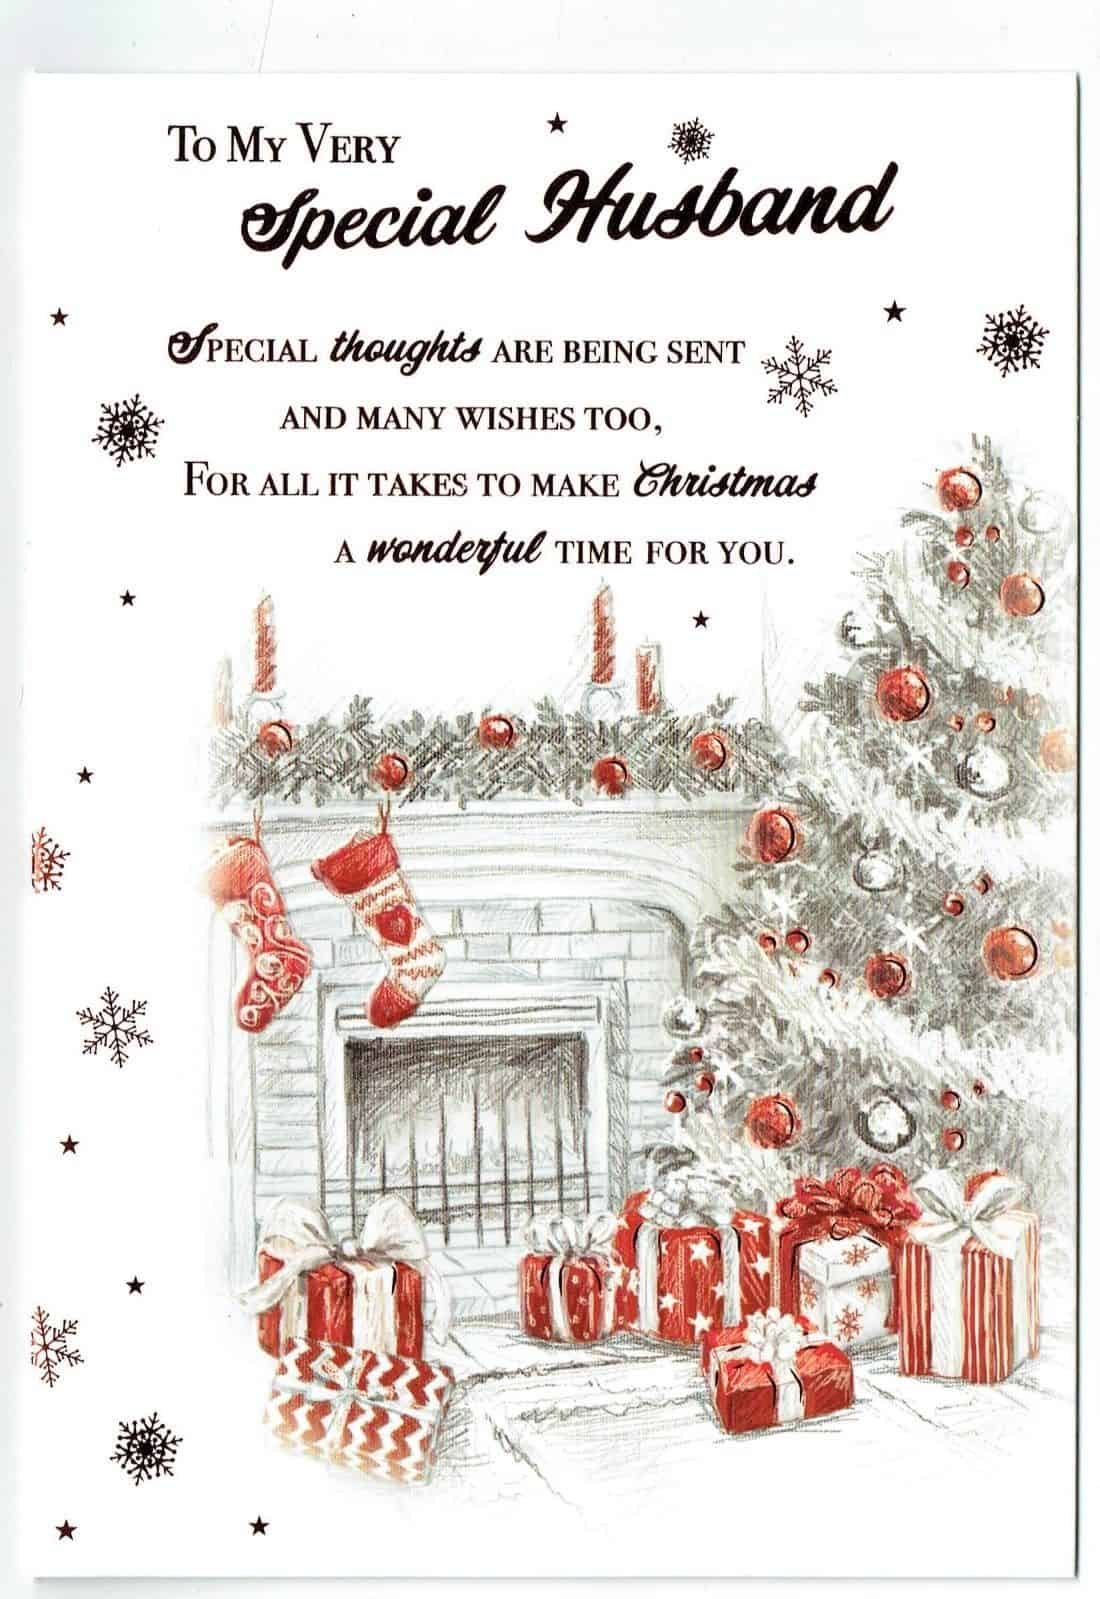 Husband Christmas Cards.Husband Christmas Card With Festive Fireplace Scene Sentiment Verse